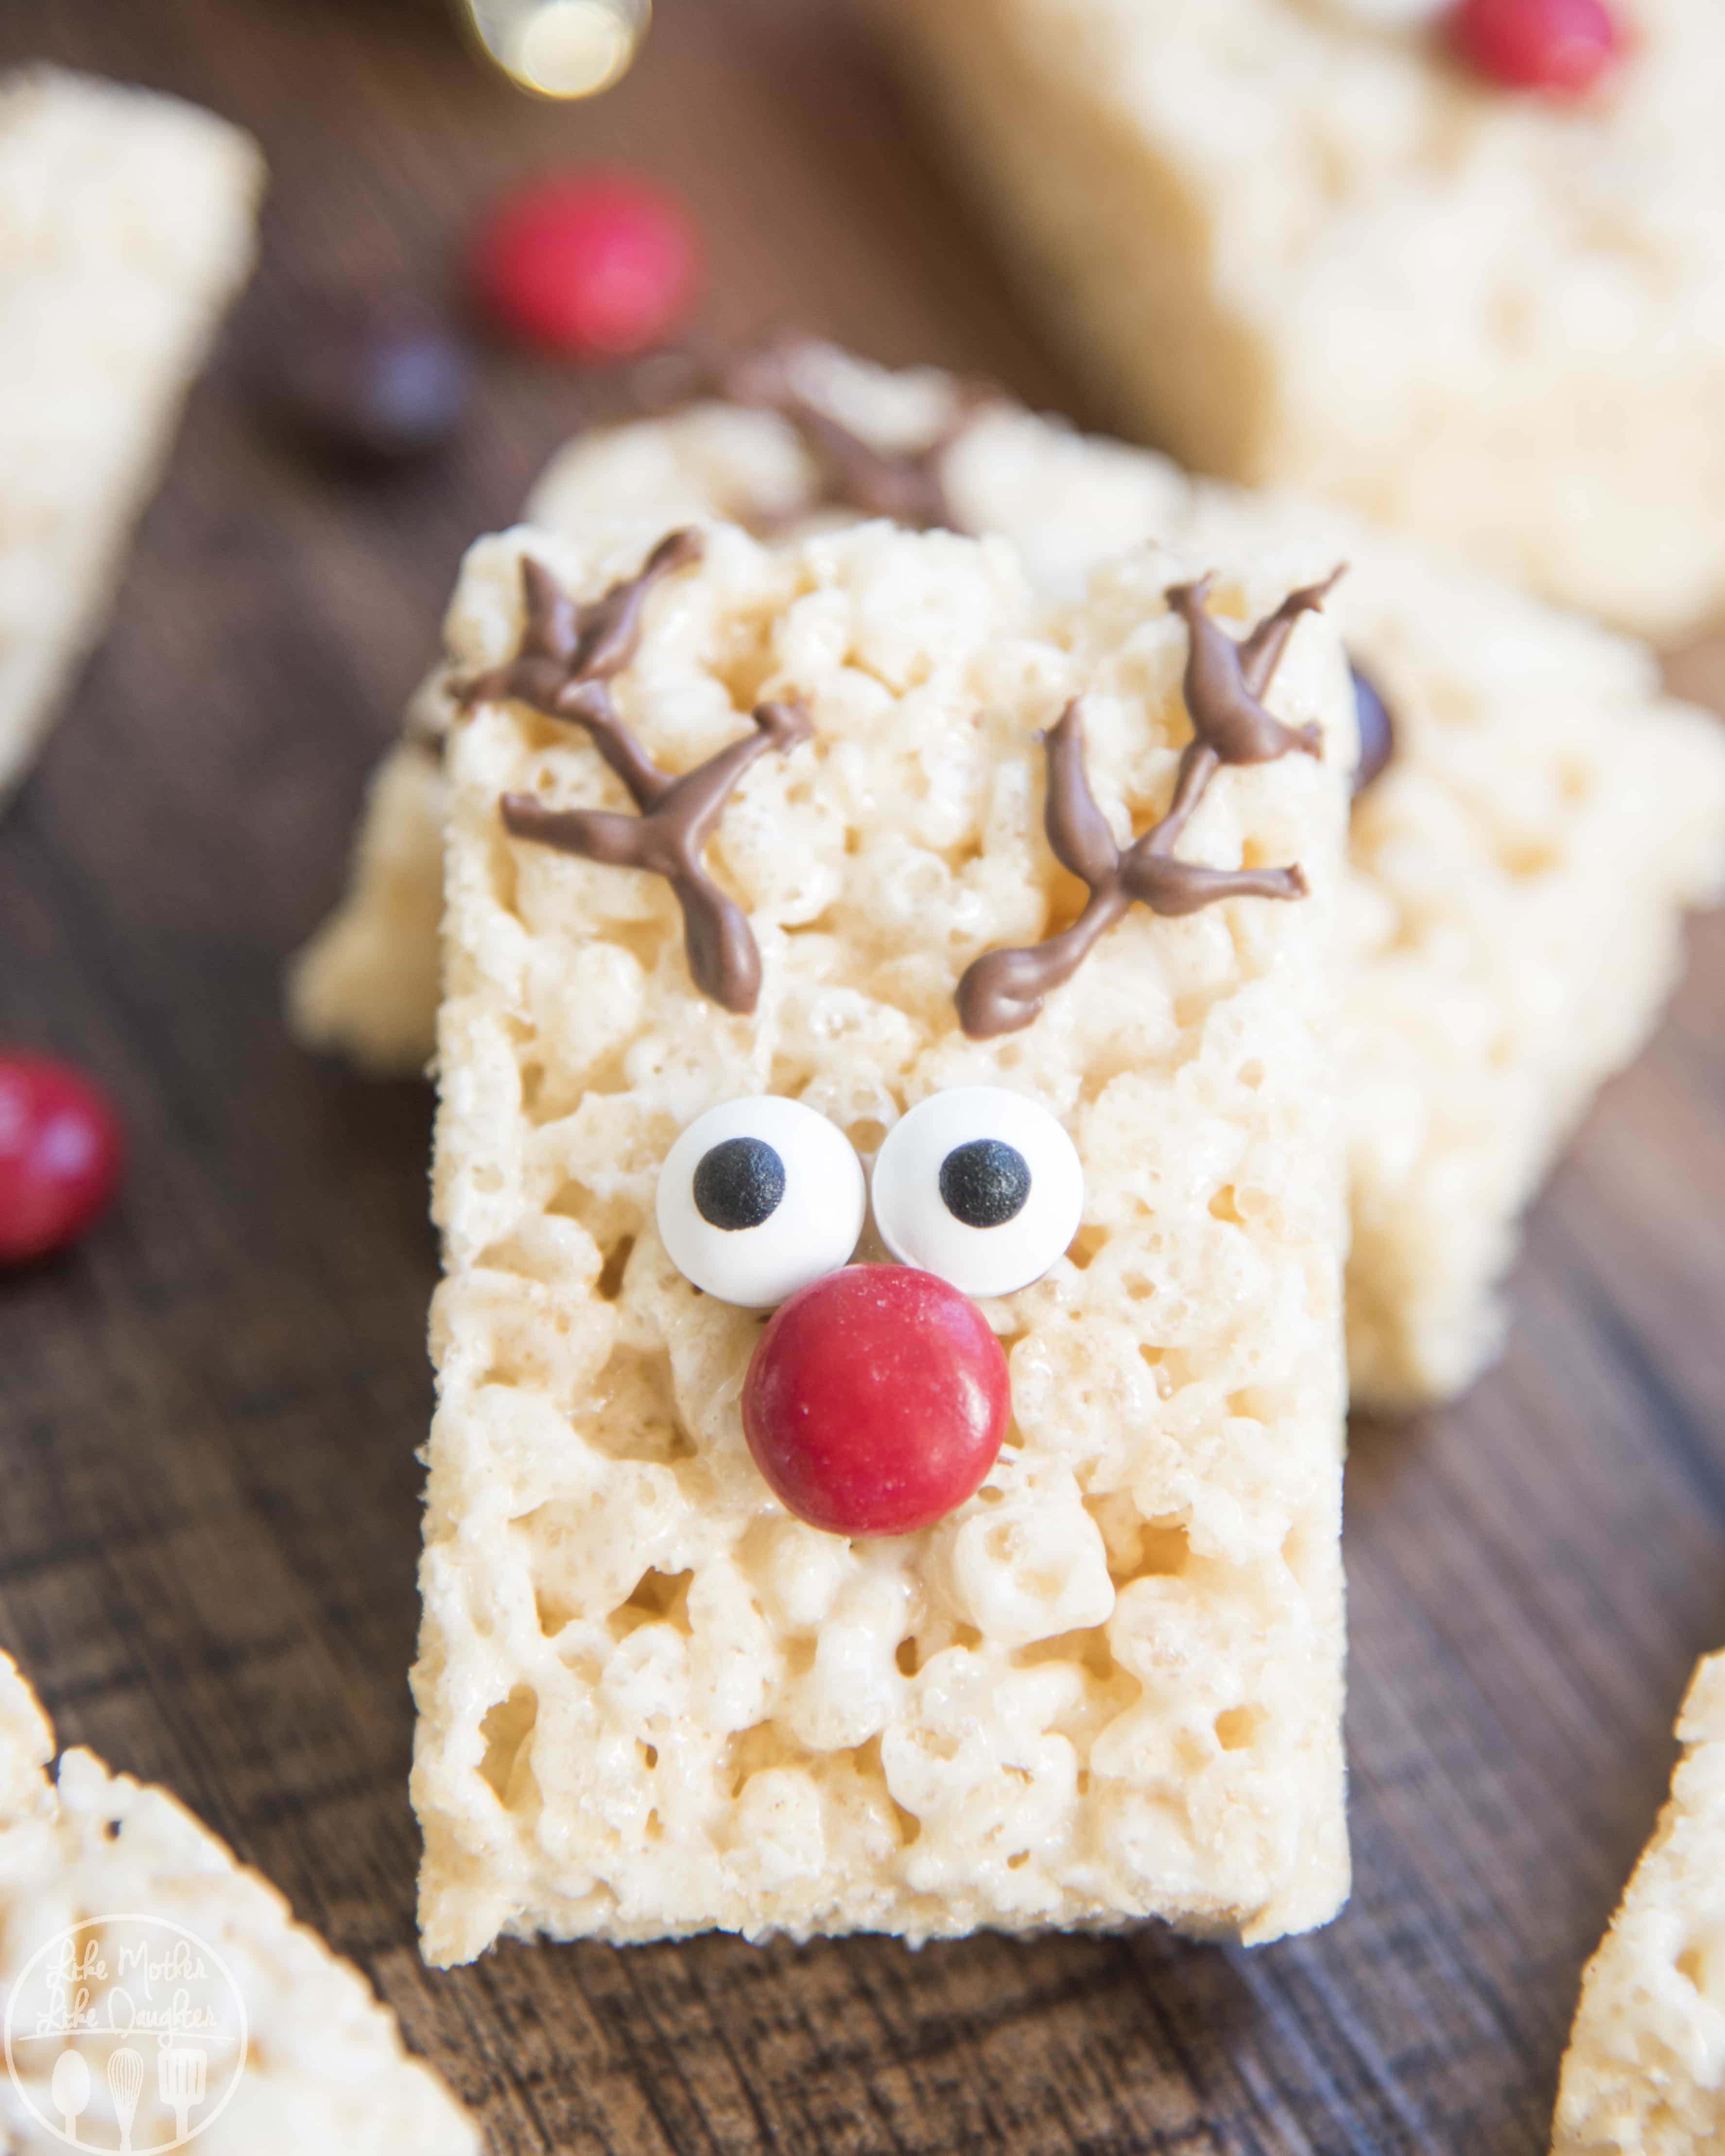 These Reindeer Rice Krispie Treats are so easy to make with only 4 ingredients; they only take minutes to make and are the perfect Christmas treat!